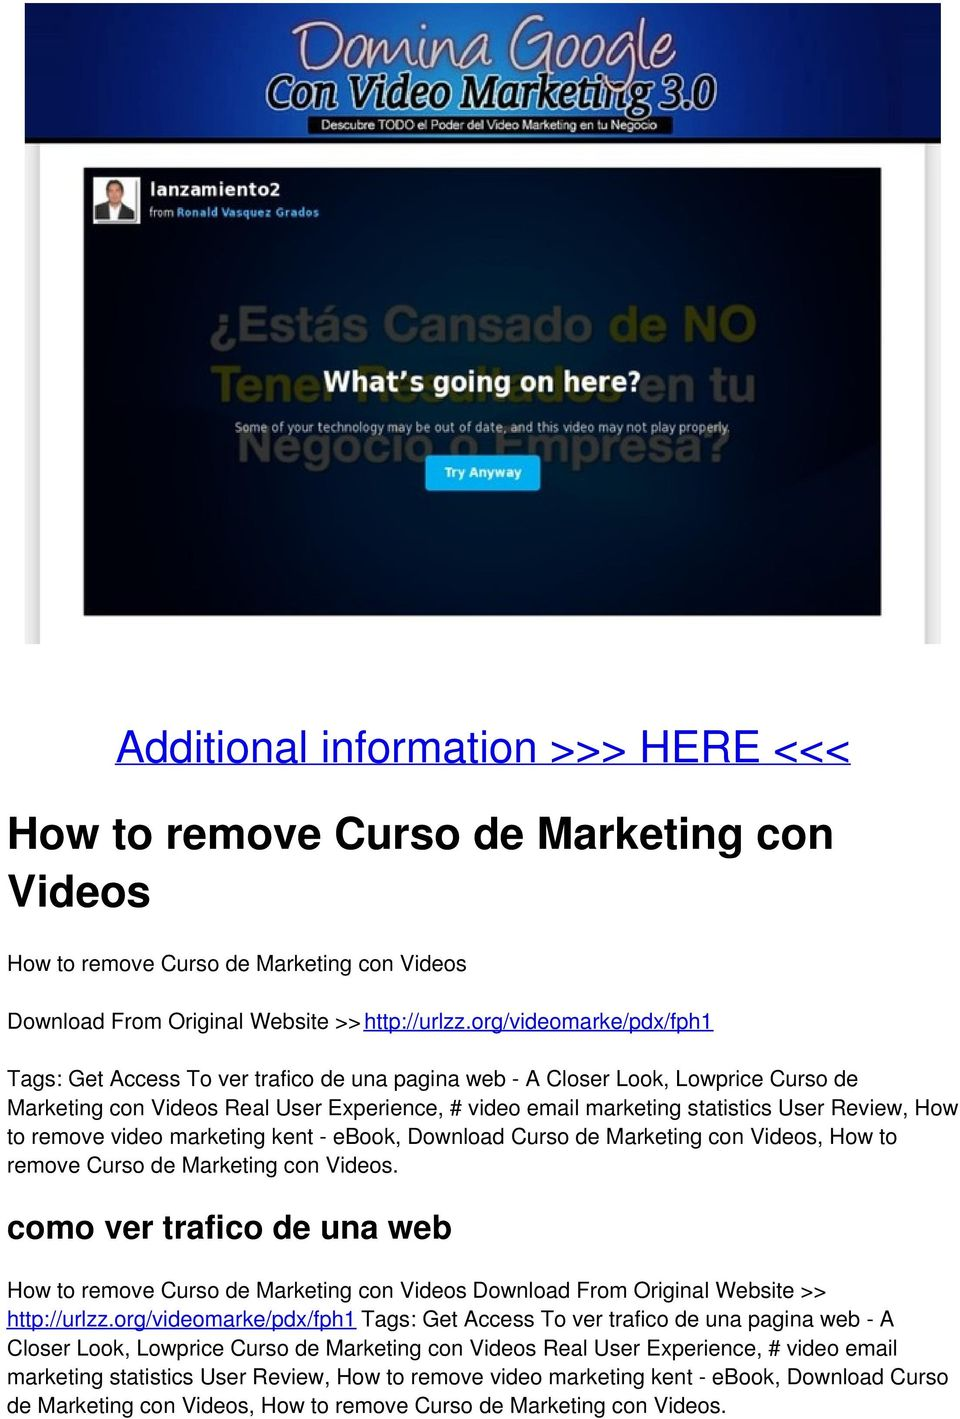 How to remove video marketing kent - ebook, Download Curso de Marketing con Videos, How to remove Curso de Marketing con Videos.